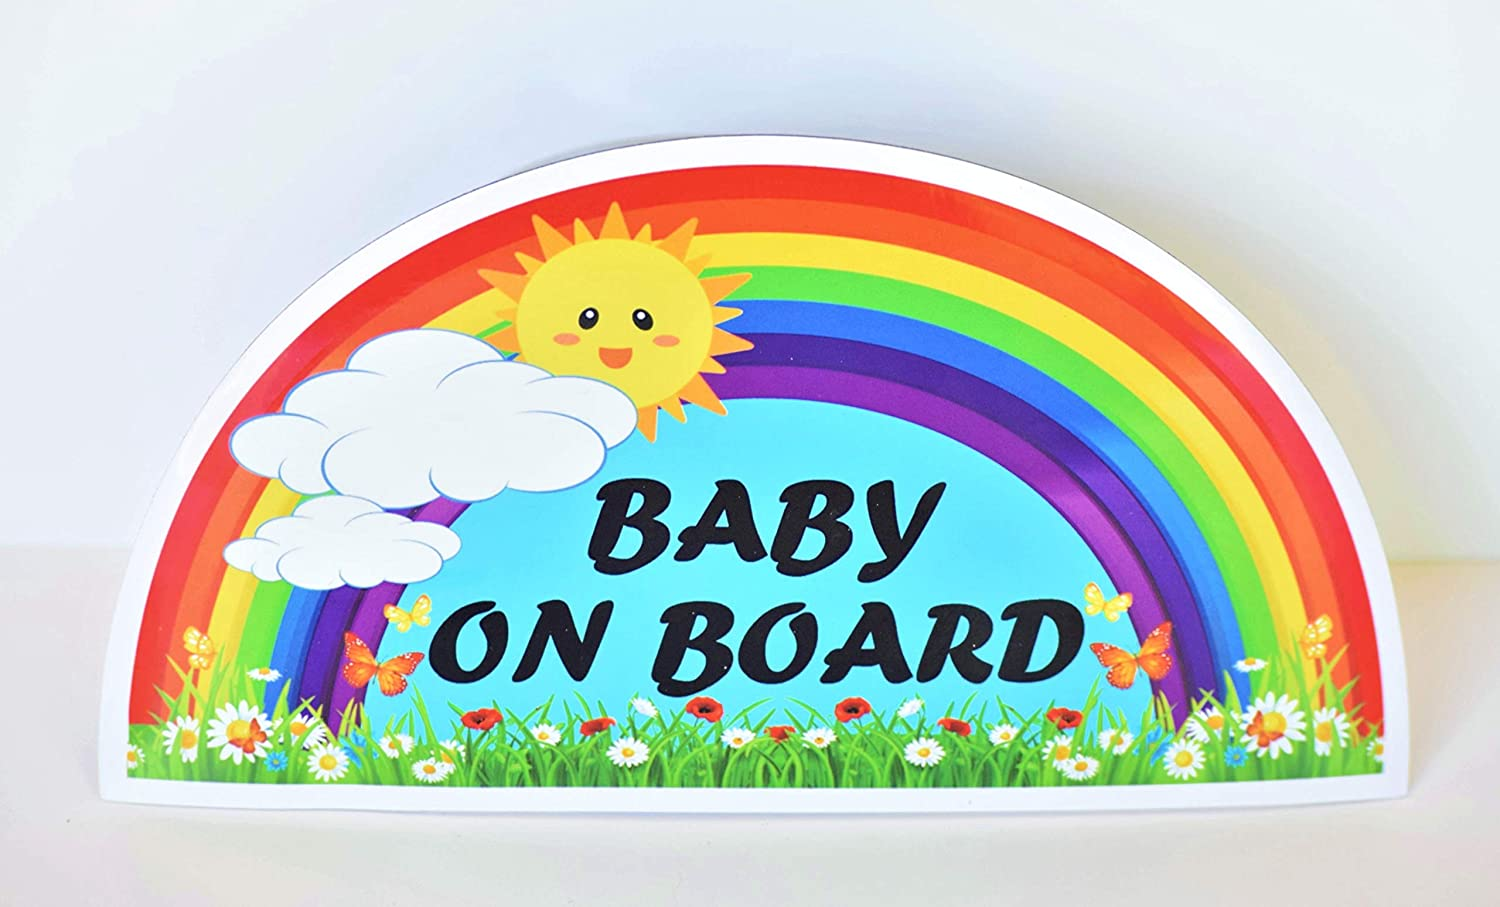 CHUBBYCHEEKS Baby on Board Magnet Sign for Car, Water Resistant, Weather Resistant with UV Protected Film (Rainbow)